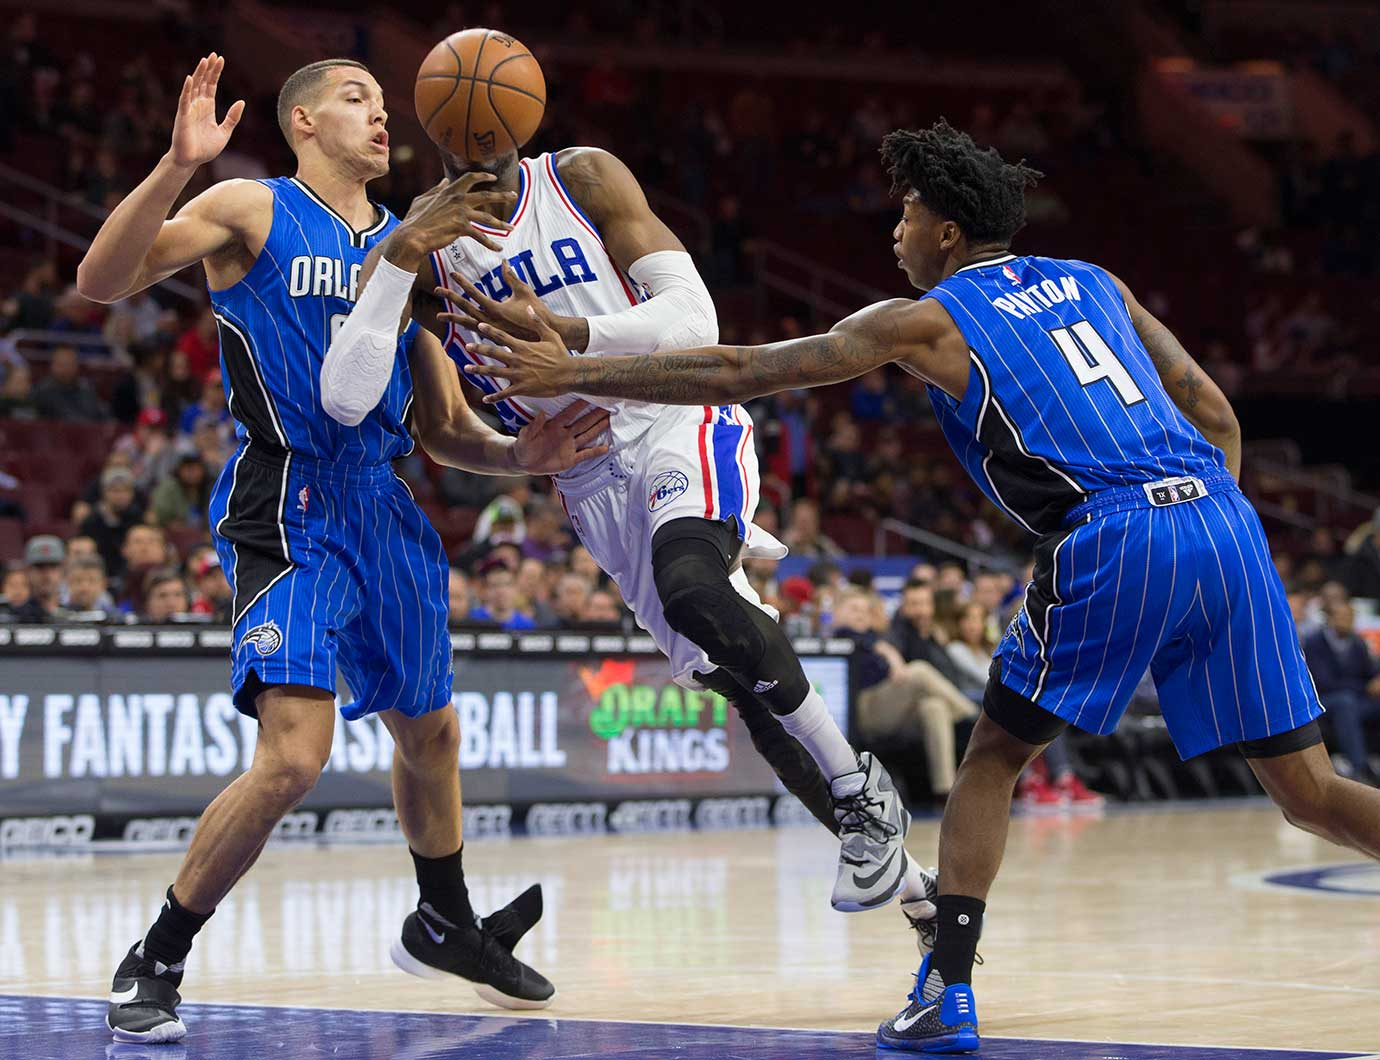 Nerlens Noel of the Philadelphia 76ers loses control of the ball against Aaron Gordon, left, Elfrid Payton of the Orlando Magic.